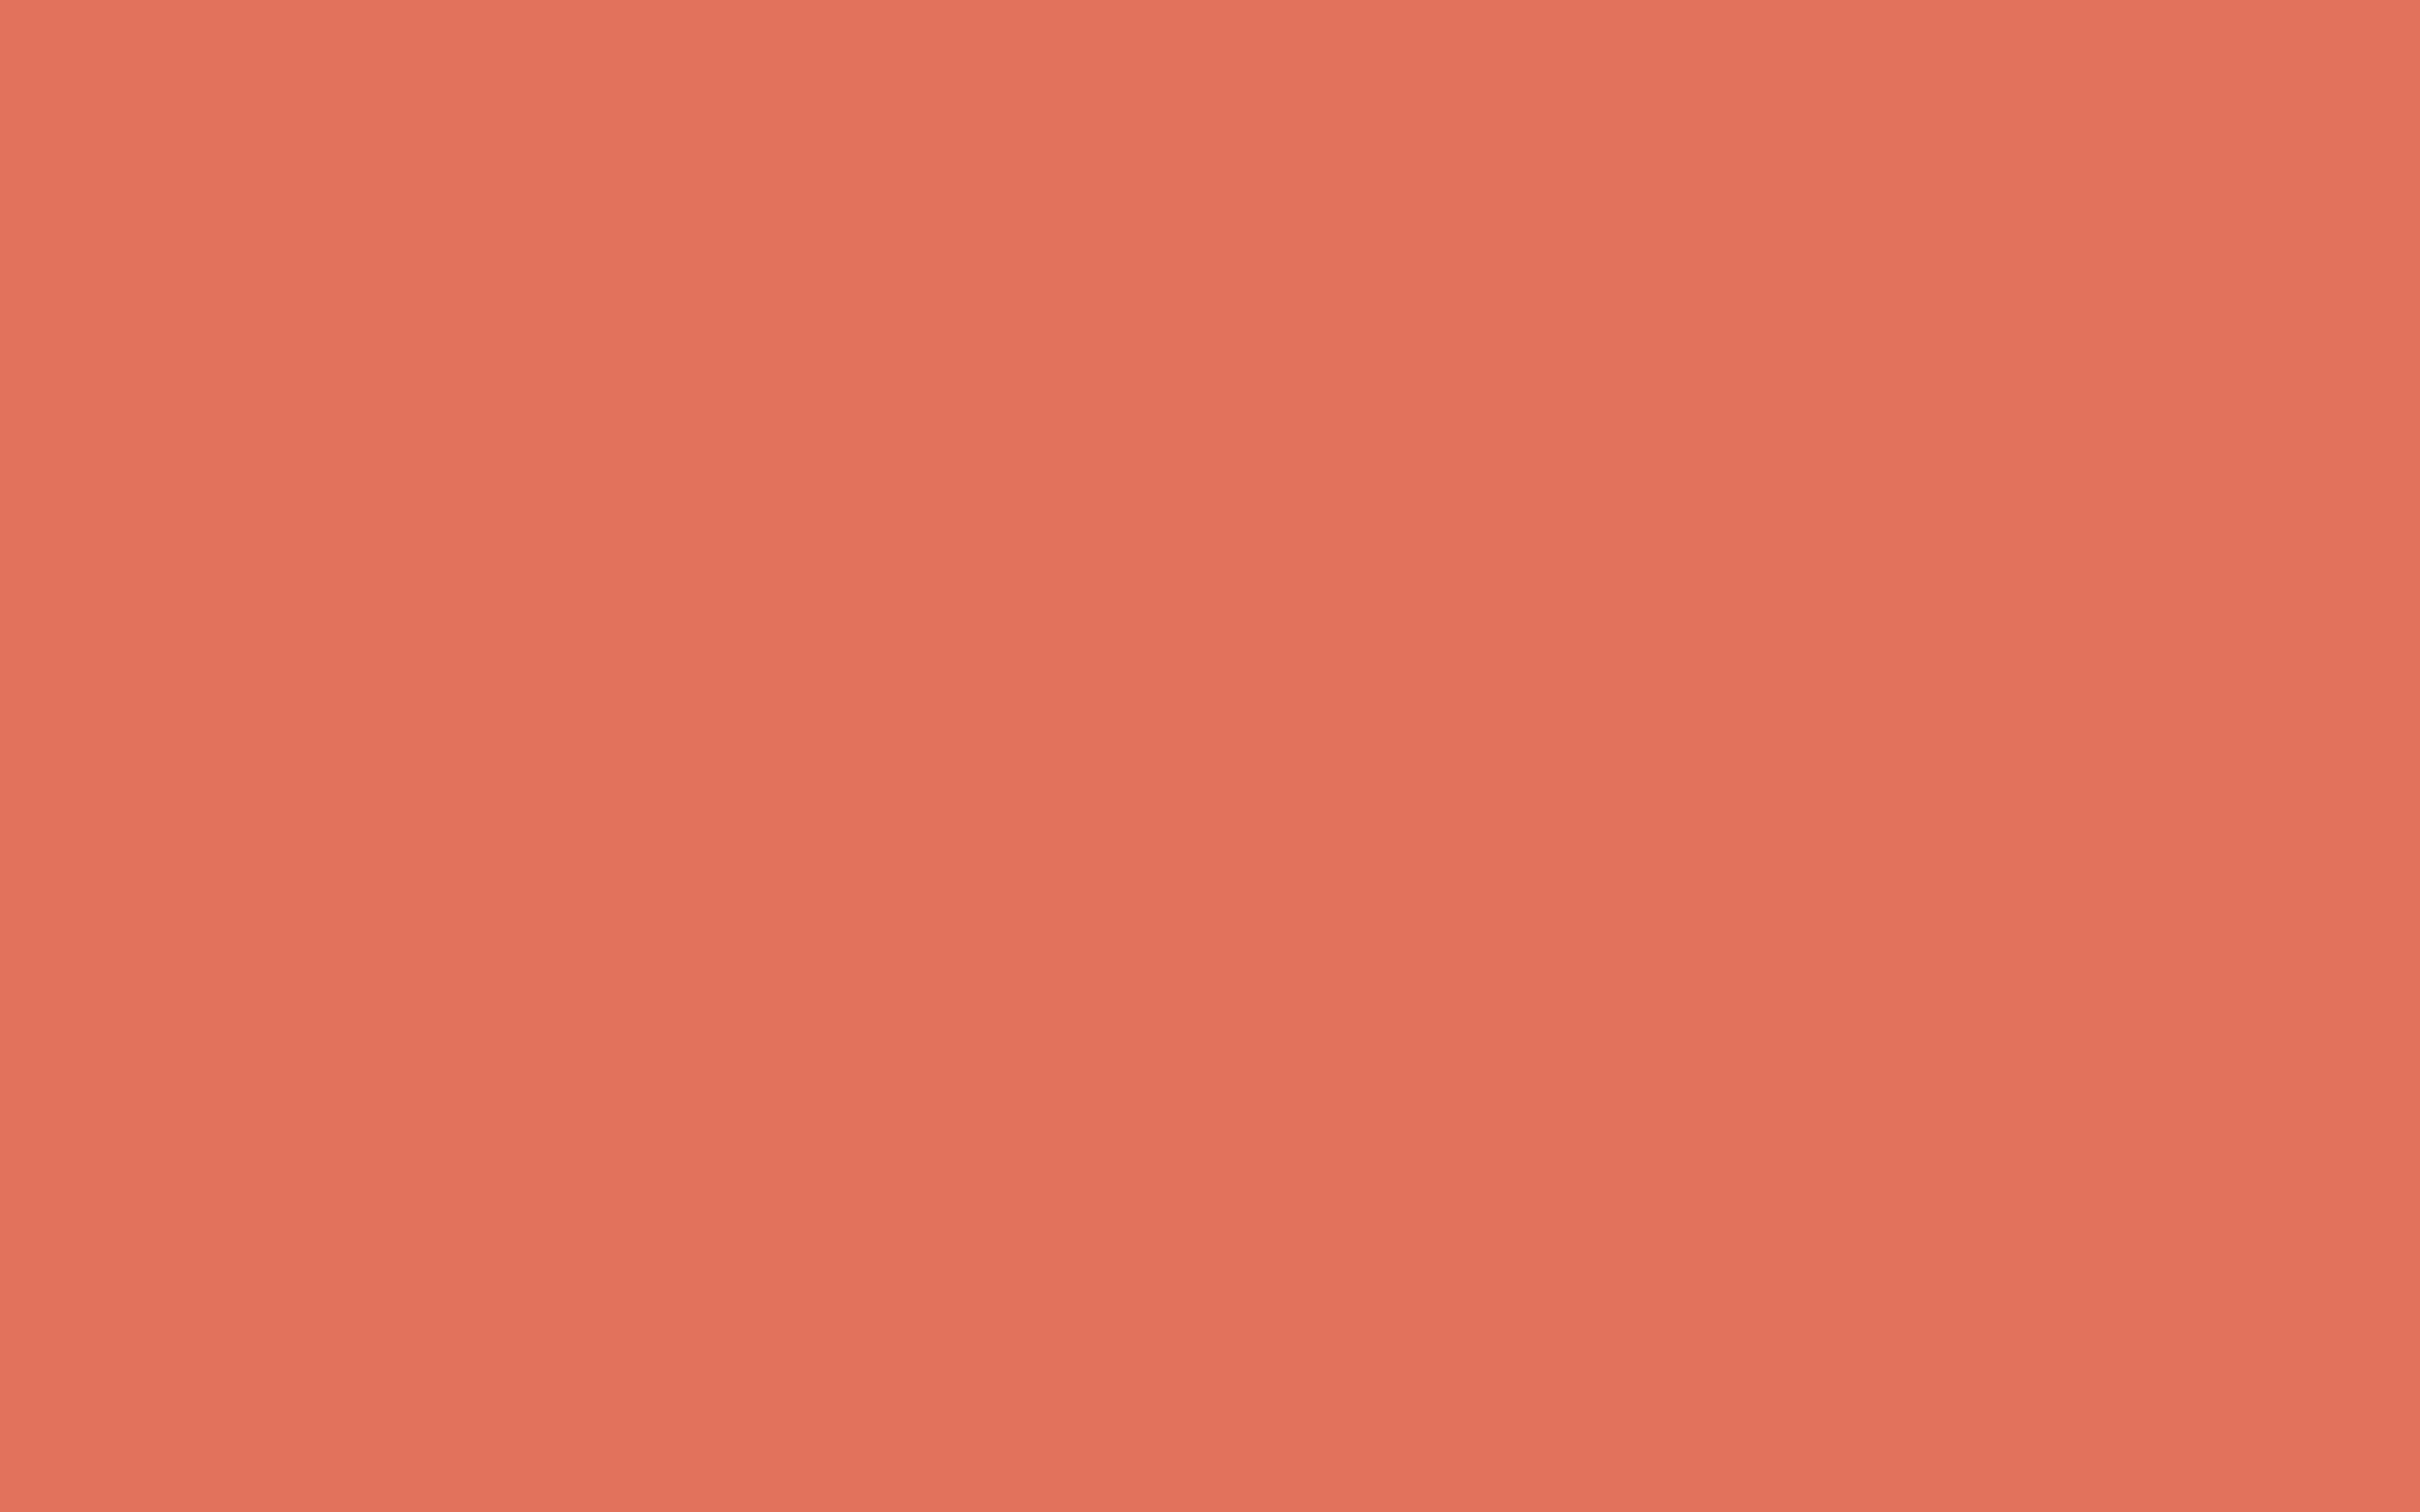 2880x1800 Terra Cotta Solid Color Background